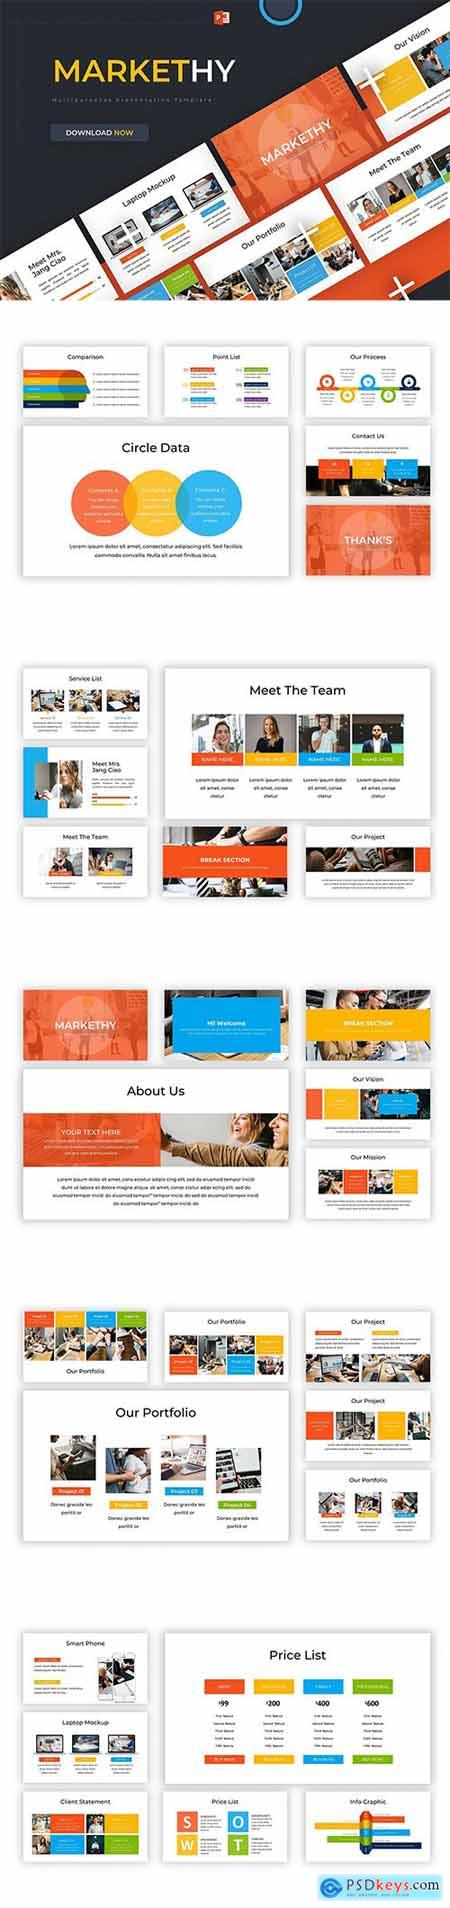 Markethy - Powerpoint Template